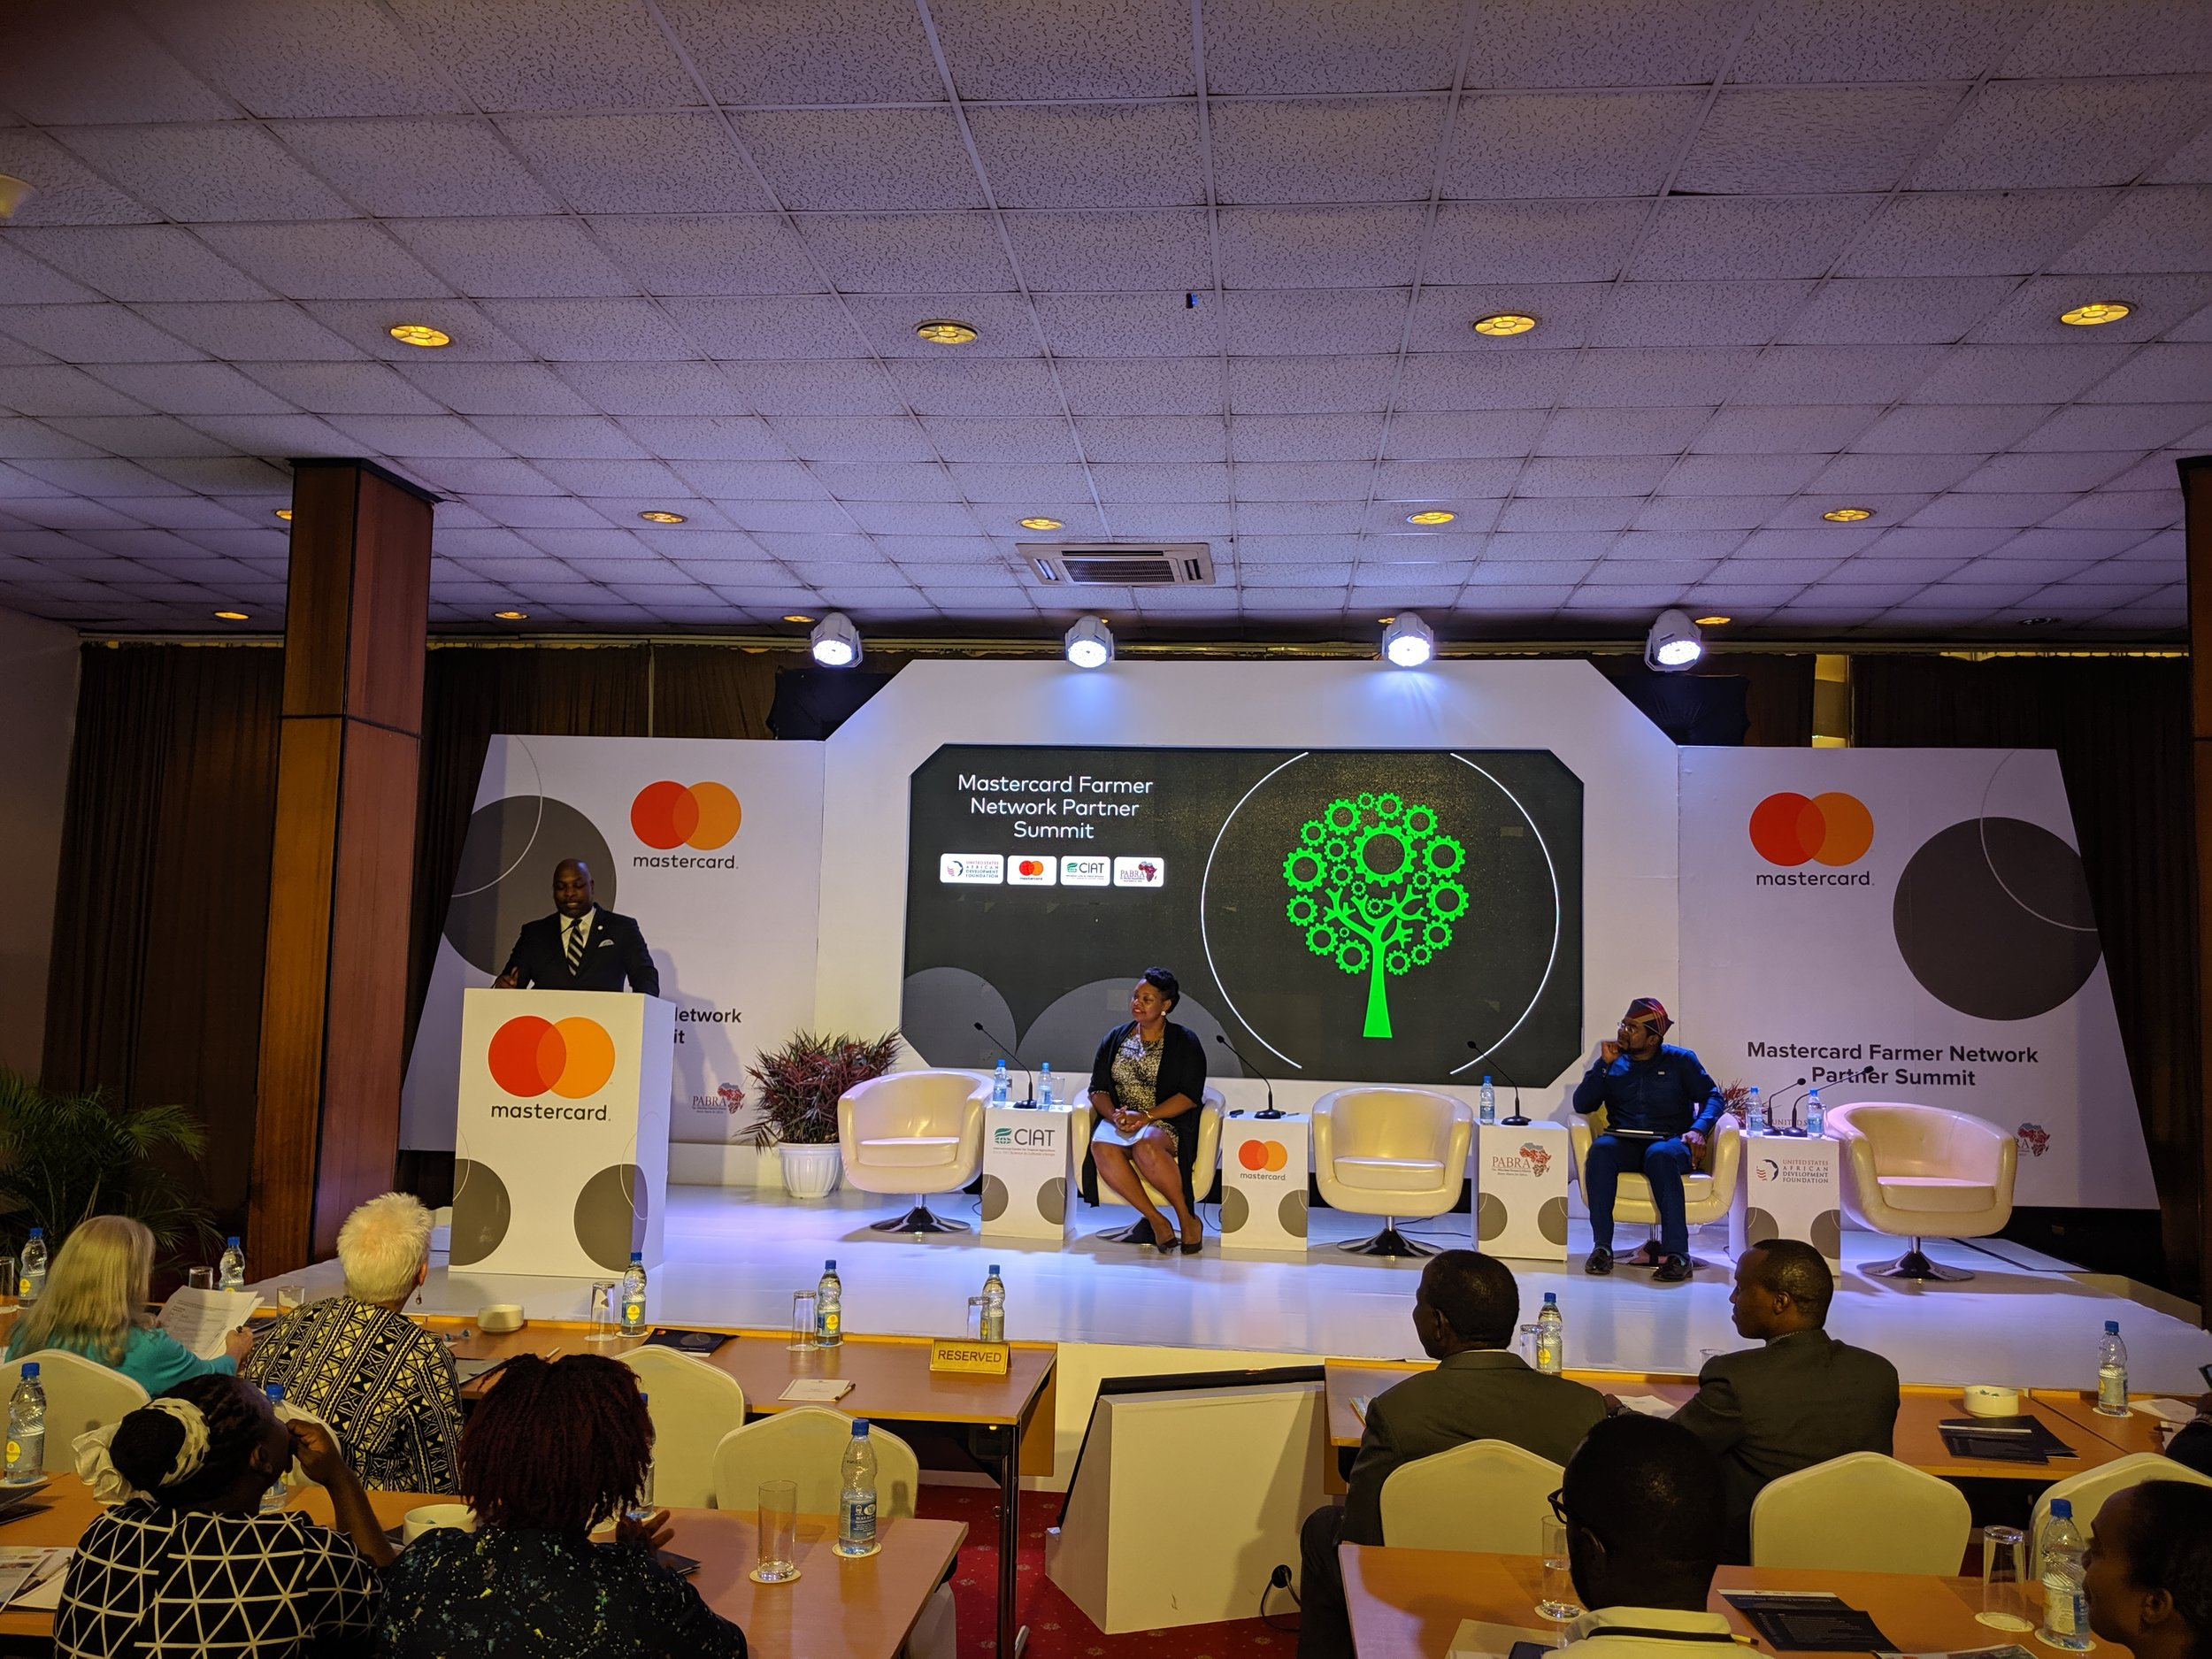 During the Mastercard Farmer Network Partner Summit, USADF President and CEO C.D. Glin spoke about the potential impact of creating digital access for farmer cooperatives in Uganda.